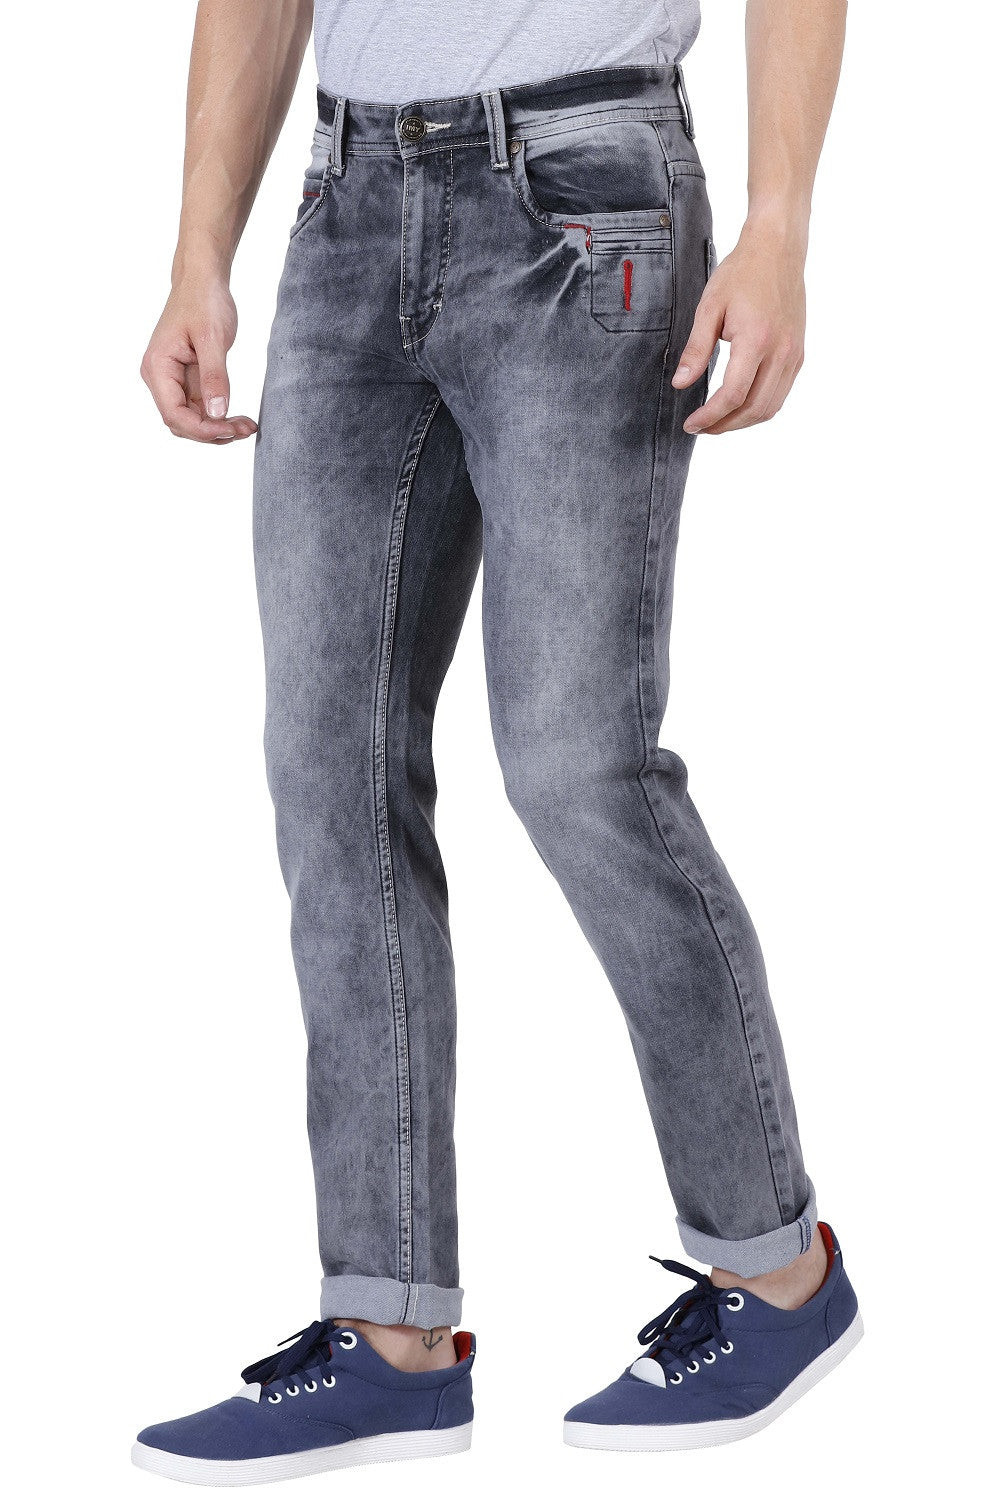 IMYOUNG Grey Slim Fit Jeans